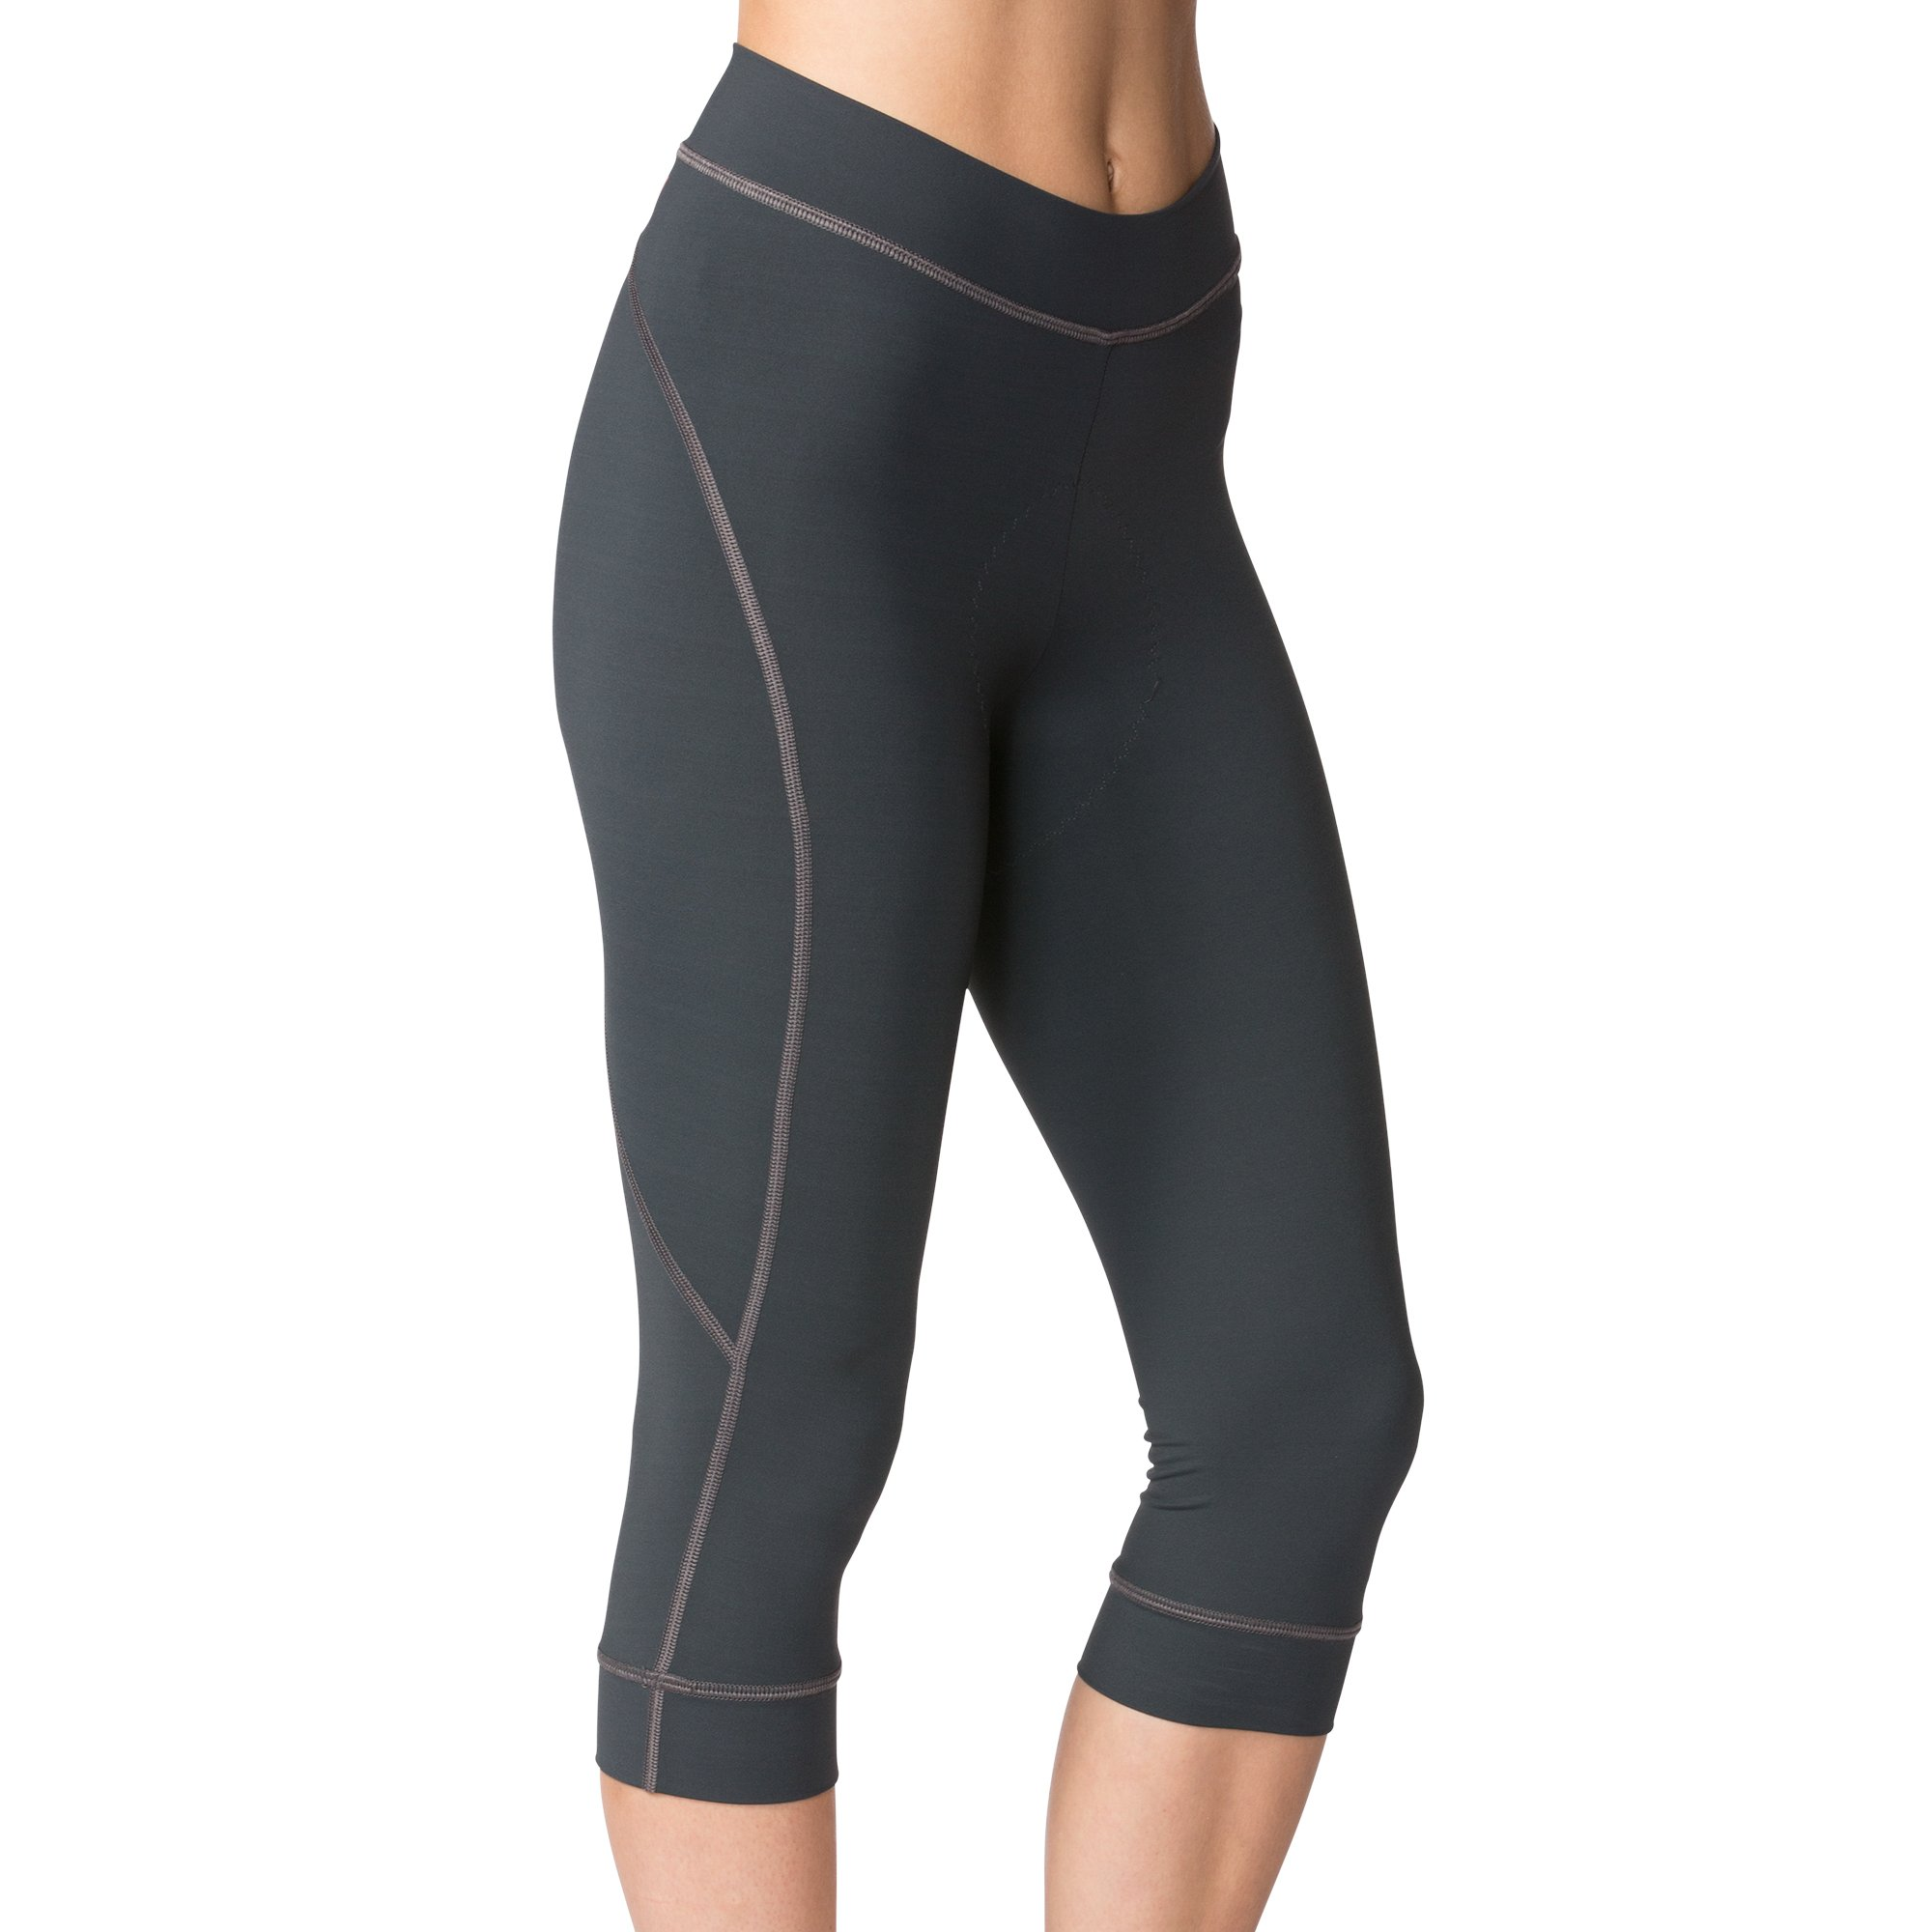 Terry Highly Rated Breakaway Performance Cycling Knickers for Women - Improved with More Padded Fleet Chamois - Charcoal - XX Large